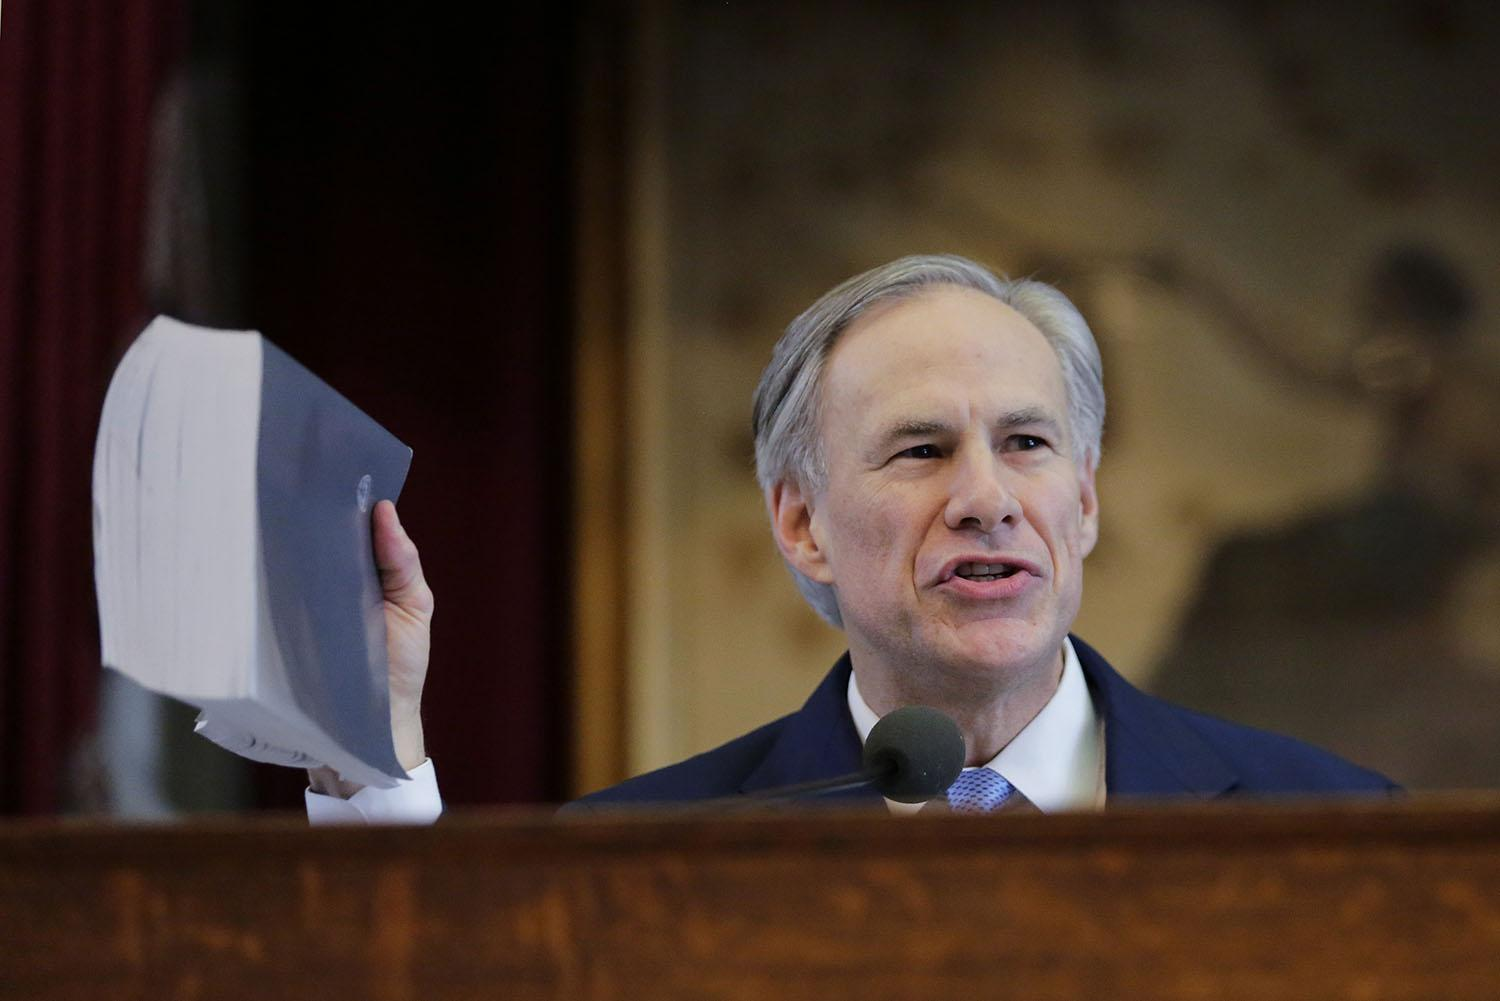 Texas Gov. Greg Abbott holds a book about Texas school laws as he delivers his State of the State address to a joint session of the House and Senate, Tuesday, Feb. 17, 2015, in Austin, Texas. (AP Photo/Eric Gay)